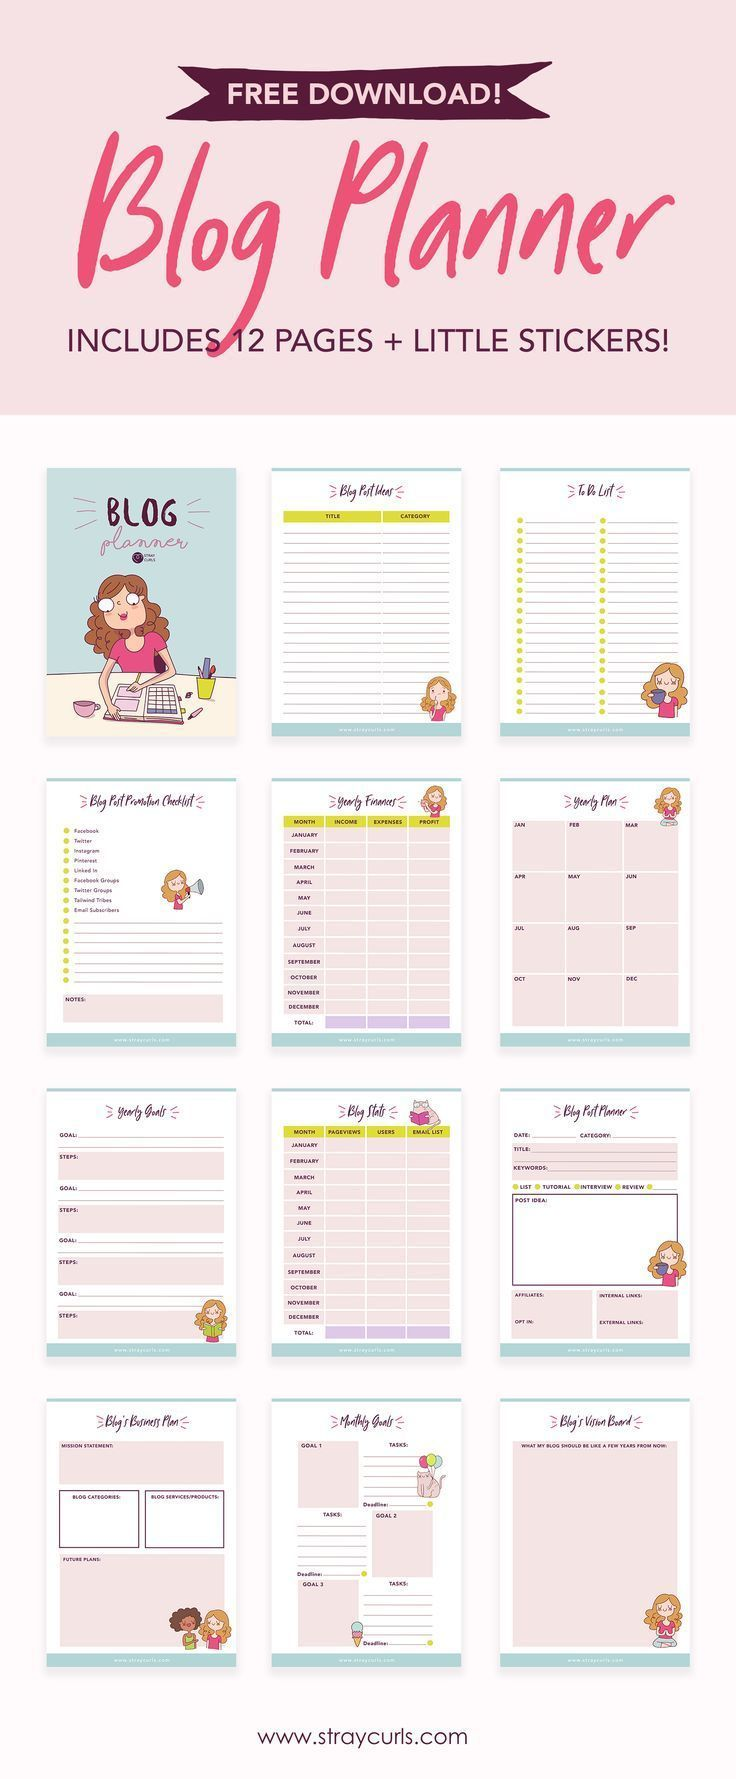 Free Download: 12 Page 2020 Blog Planner - Stray Curls